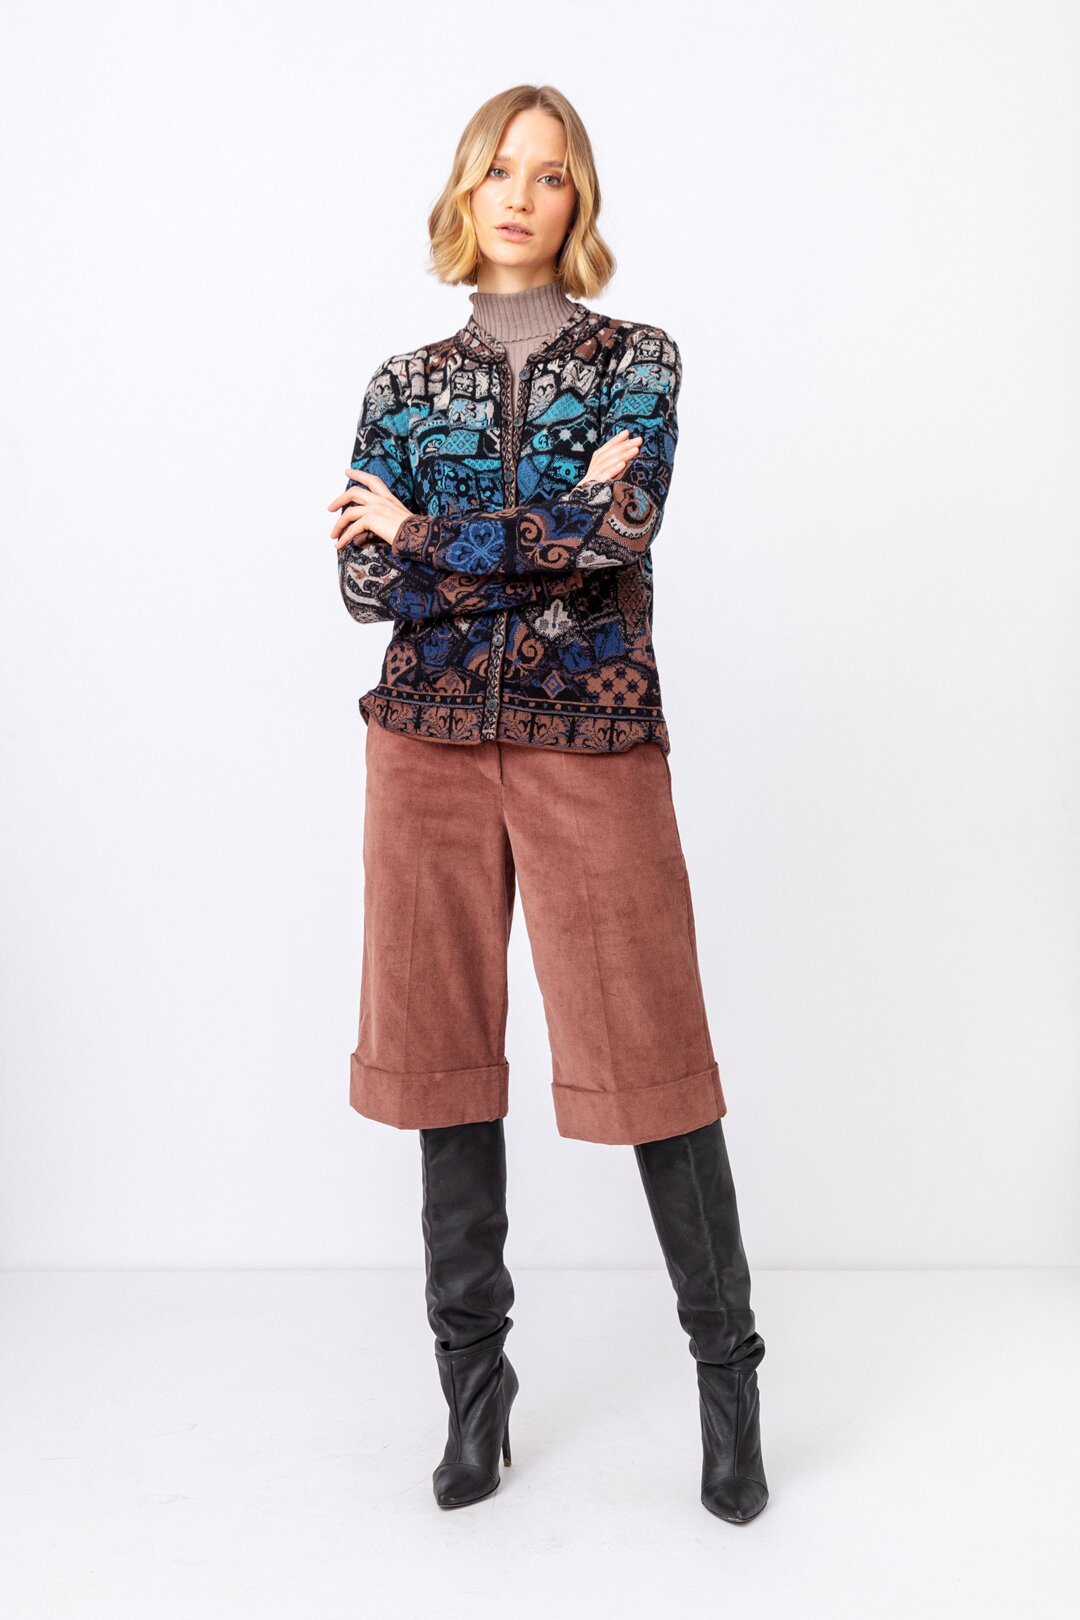 outfit-7c8a0927